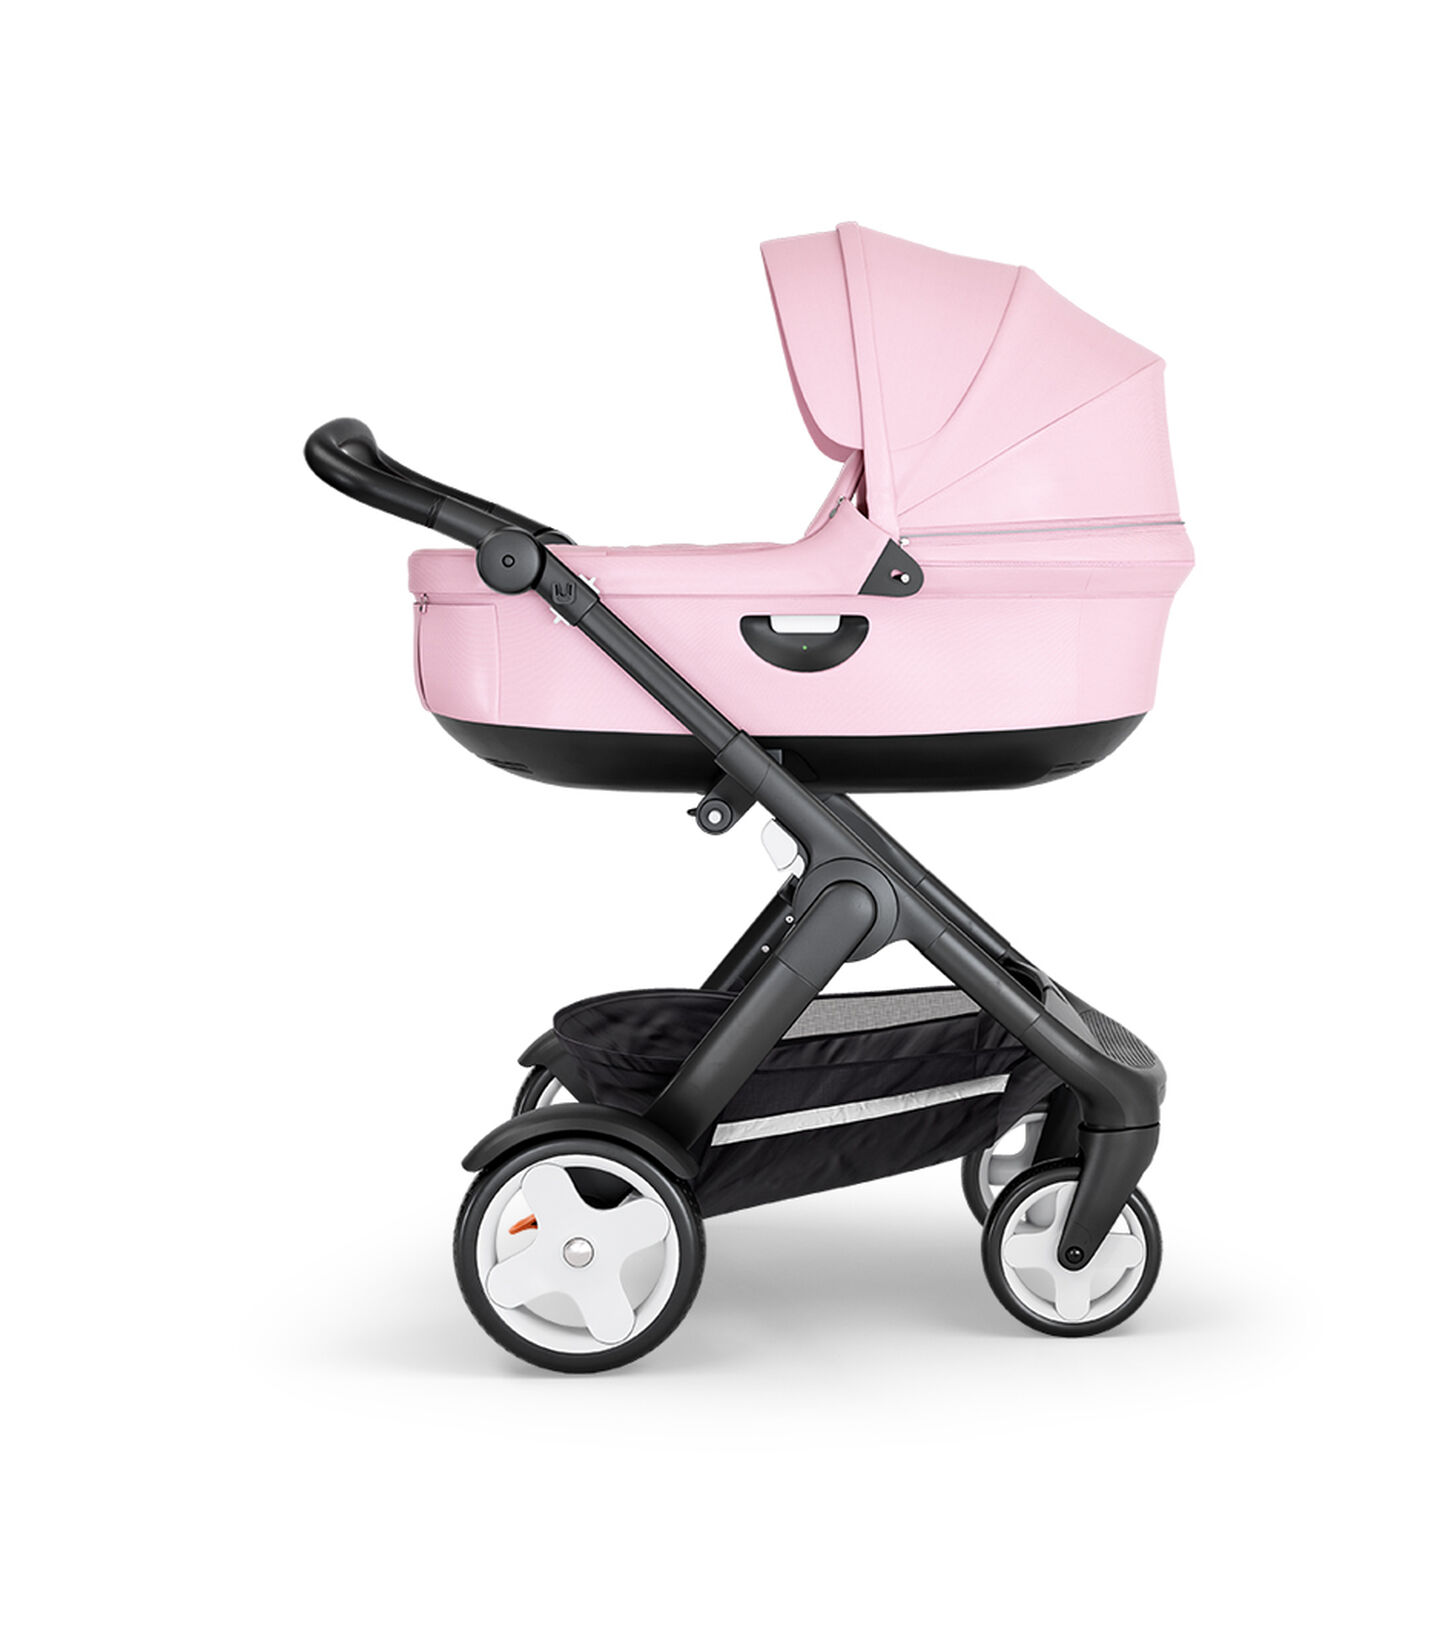 Stokke® Trailz™ with Black Chassis, Black Leatherette and Classic Wheels. Stokke® Stroller Carry Cot, Lotus Pink.